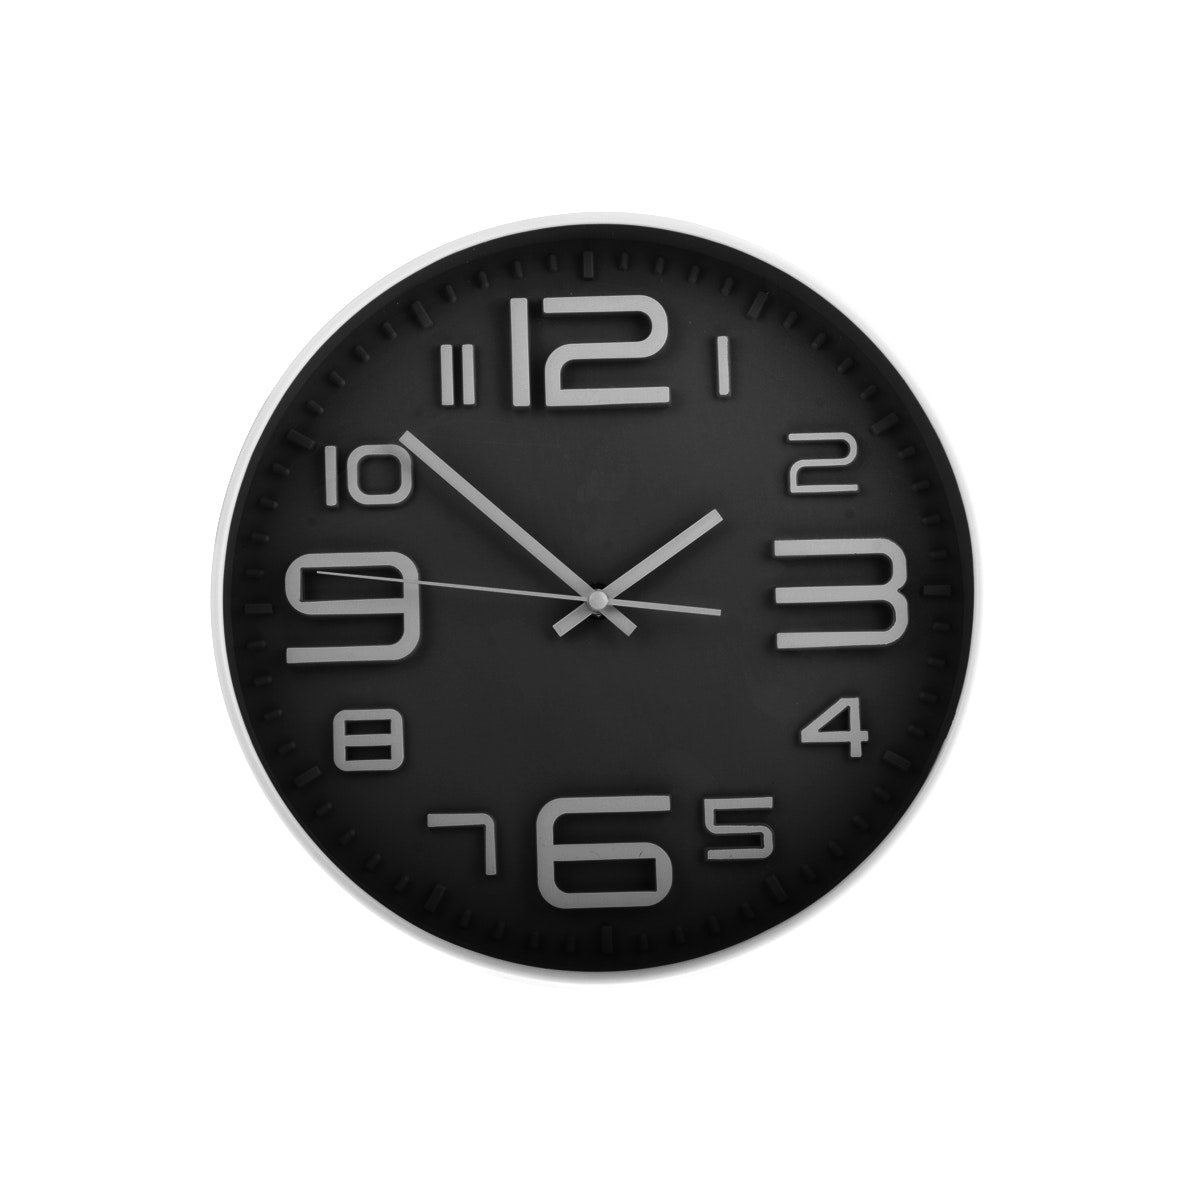 JYSK Wall Clock Black 18466 B